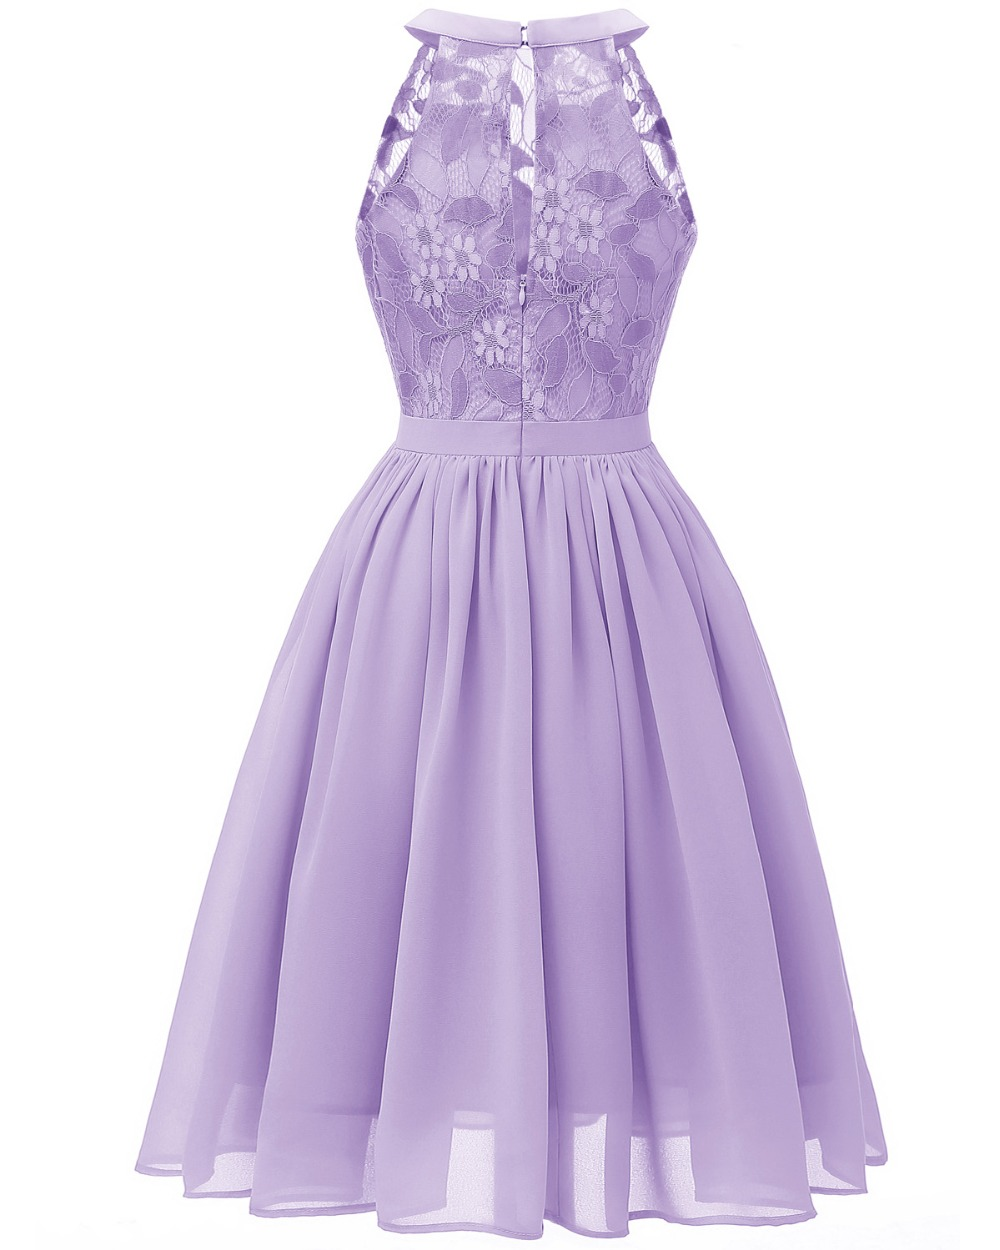 Formal Party Dress 5